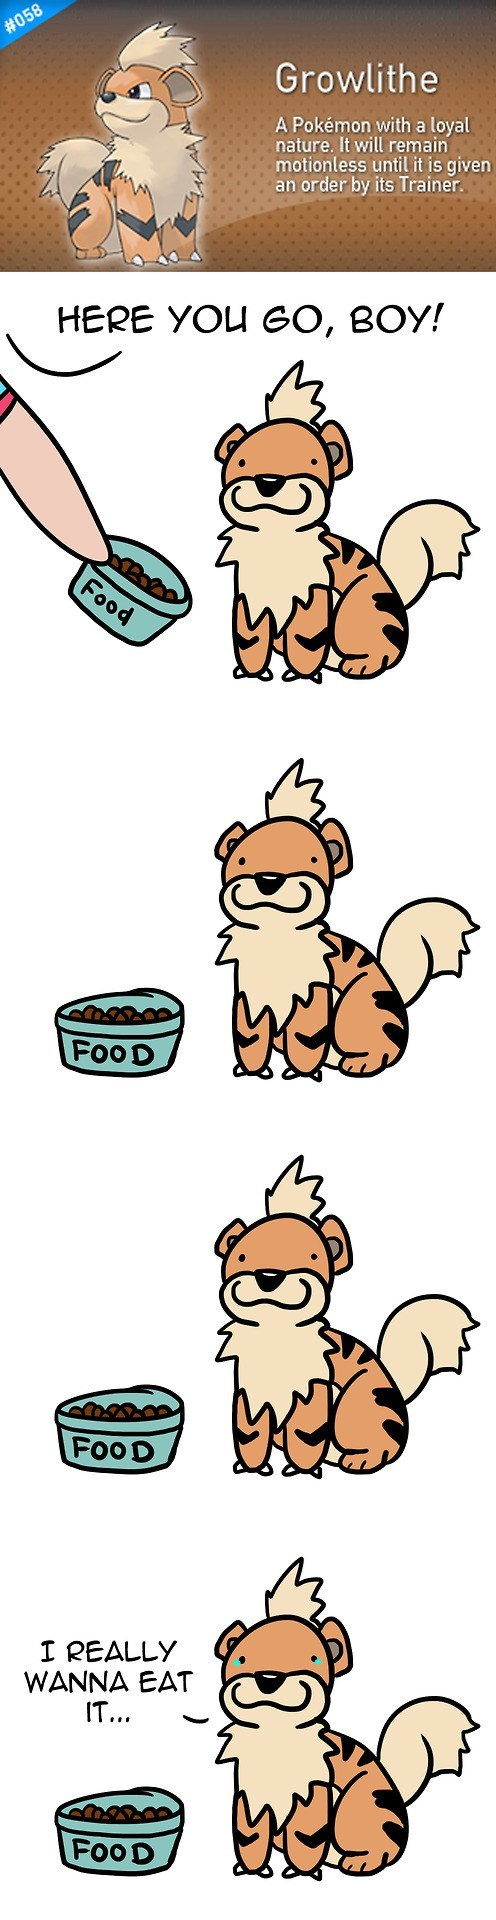 pokedex Pokémon growlithe comics - 7155864320